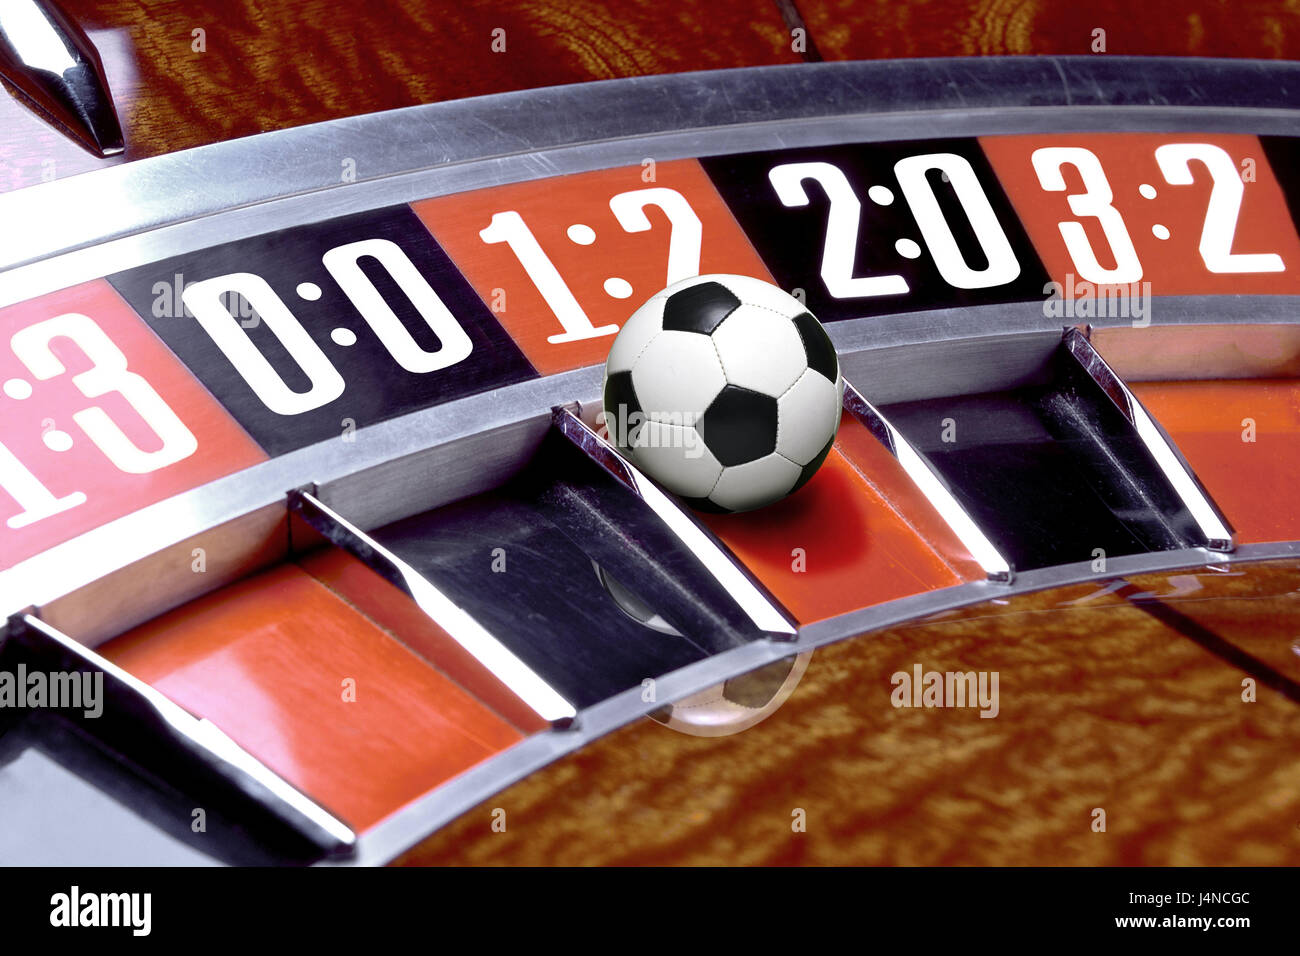 Roulette, football, fields, score, results, detail, luck, chance, game, gate, goals, possibilities, ball, superstition, - Stock Image